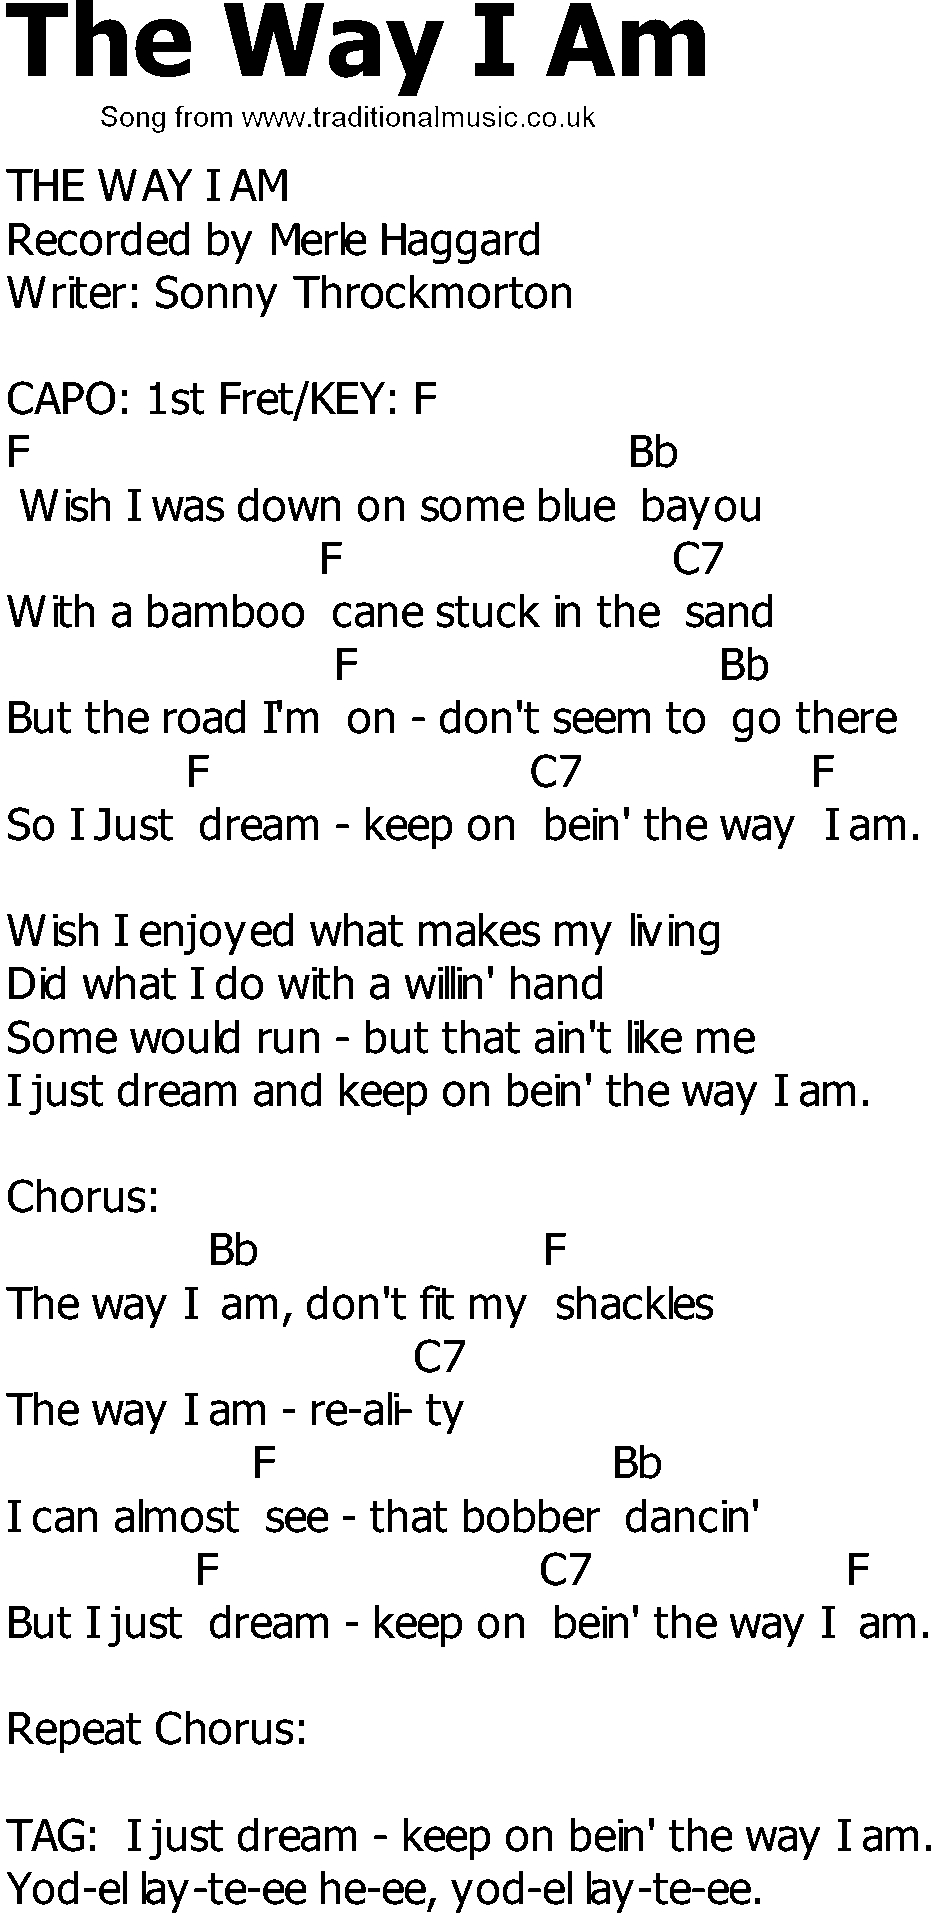 The Way I Am Chords Old Country Song Lyrics With Chords The Way I Am